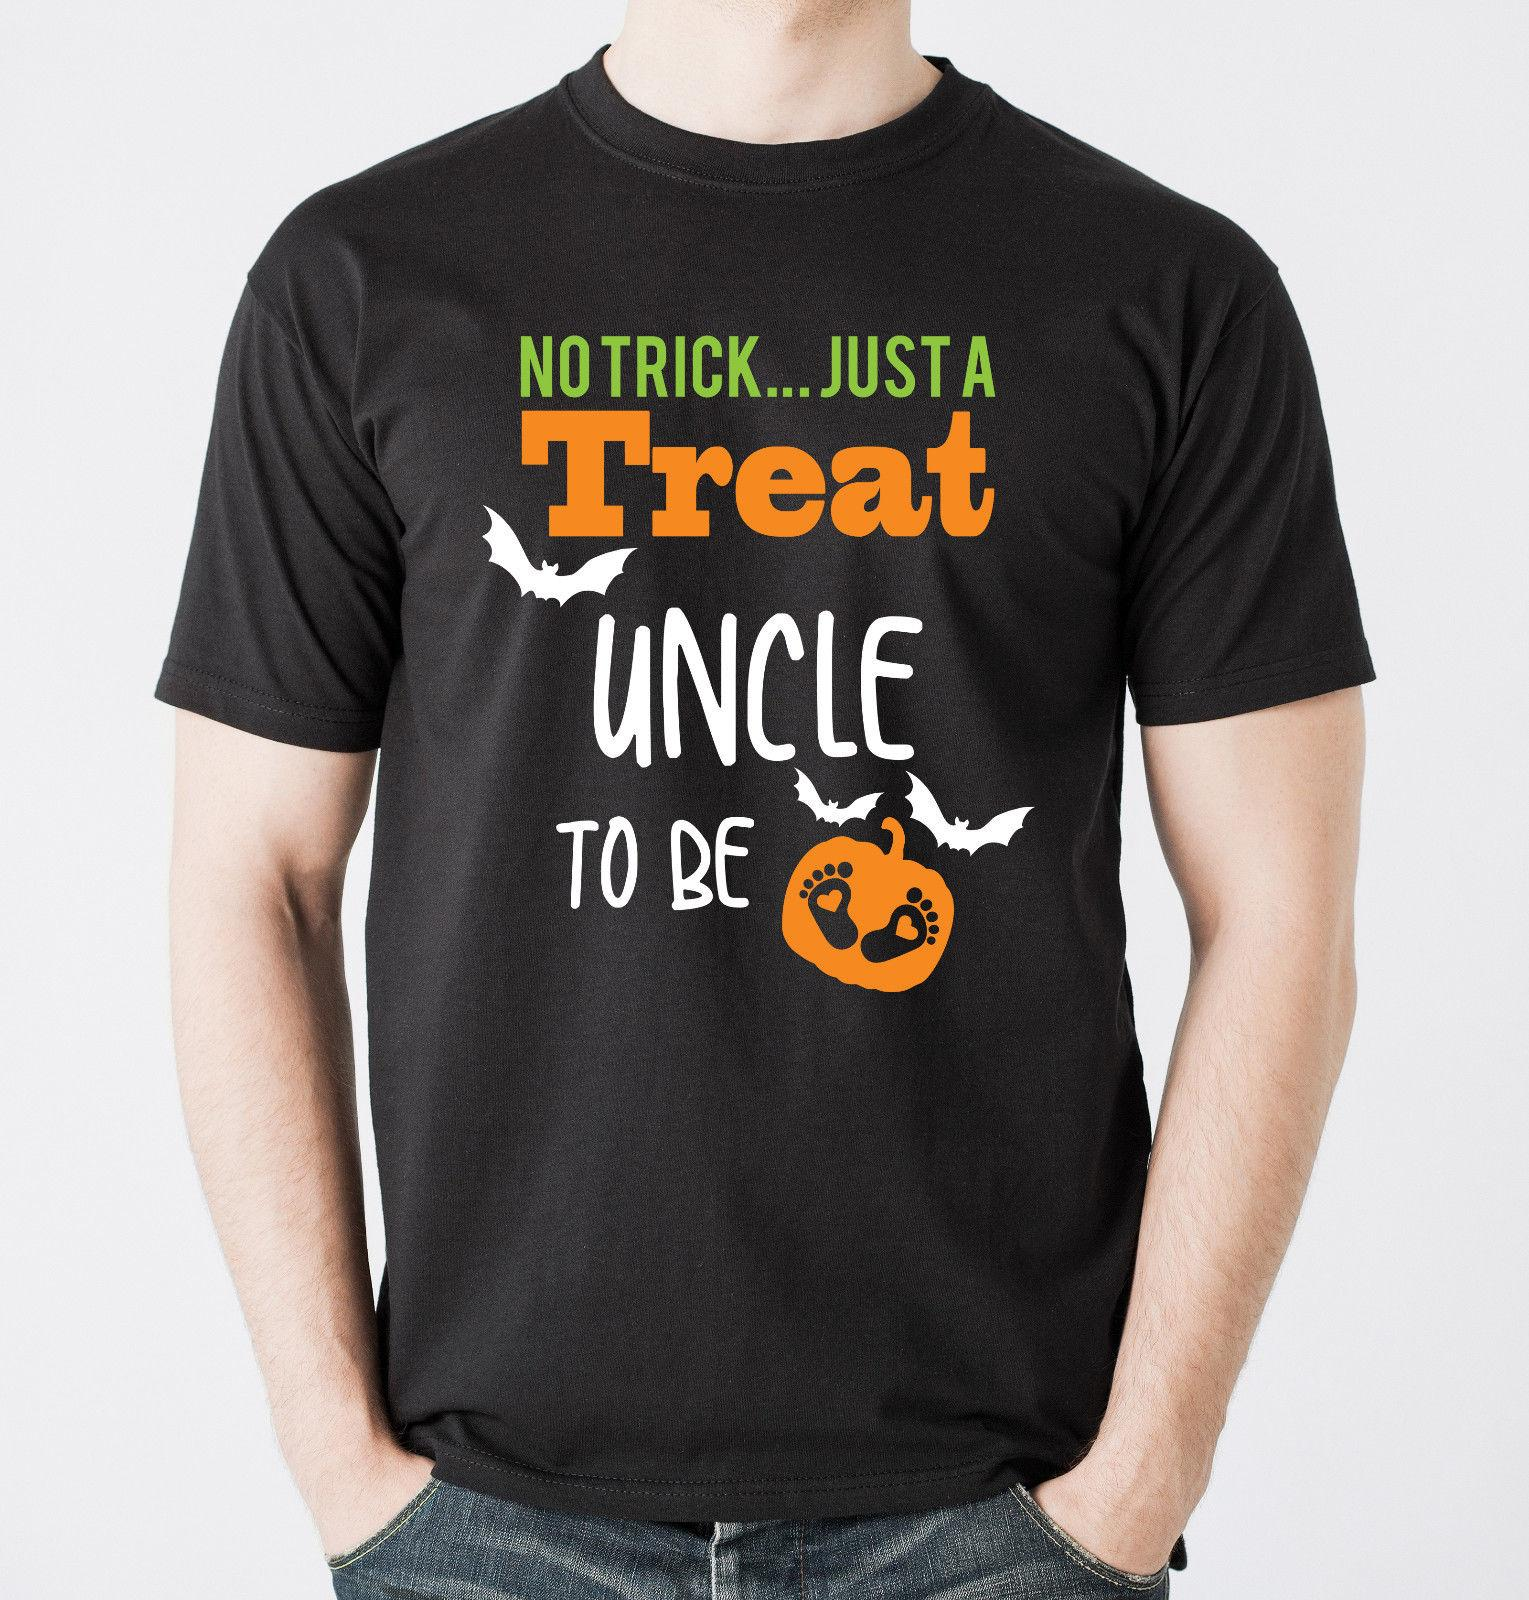 00c24dbe40c64 Halloween Pregnancy Reveal Uncle To Be Black T Shirts Set. Baby Announcement.  Funny Unisex Casual Funny Tshirts Long Sleeve Shirts From Fantees, ...